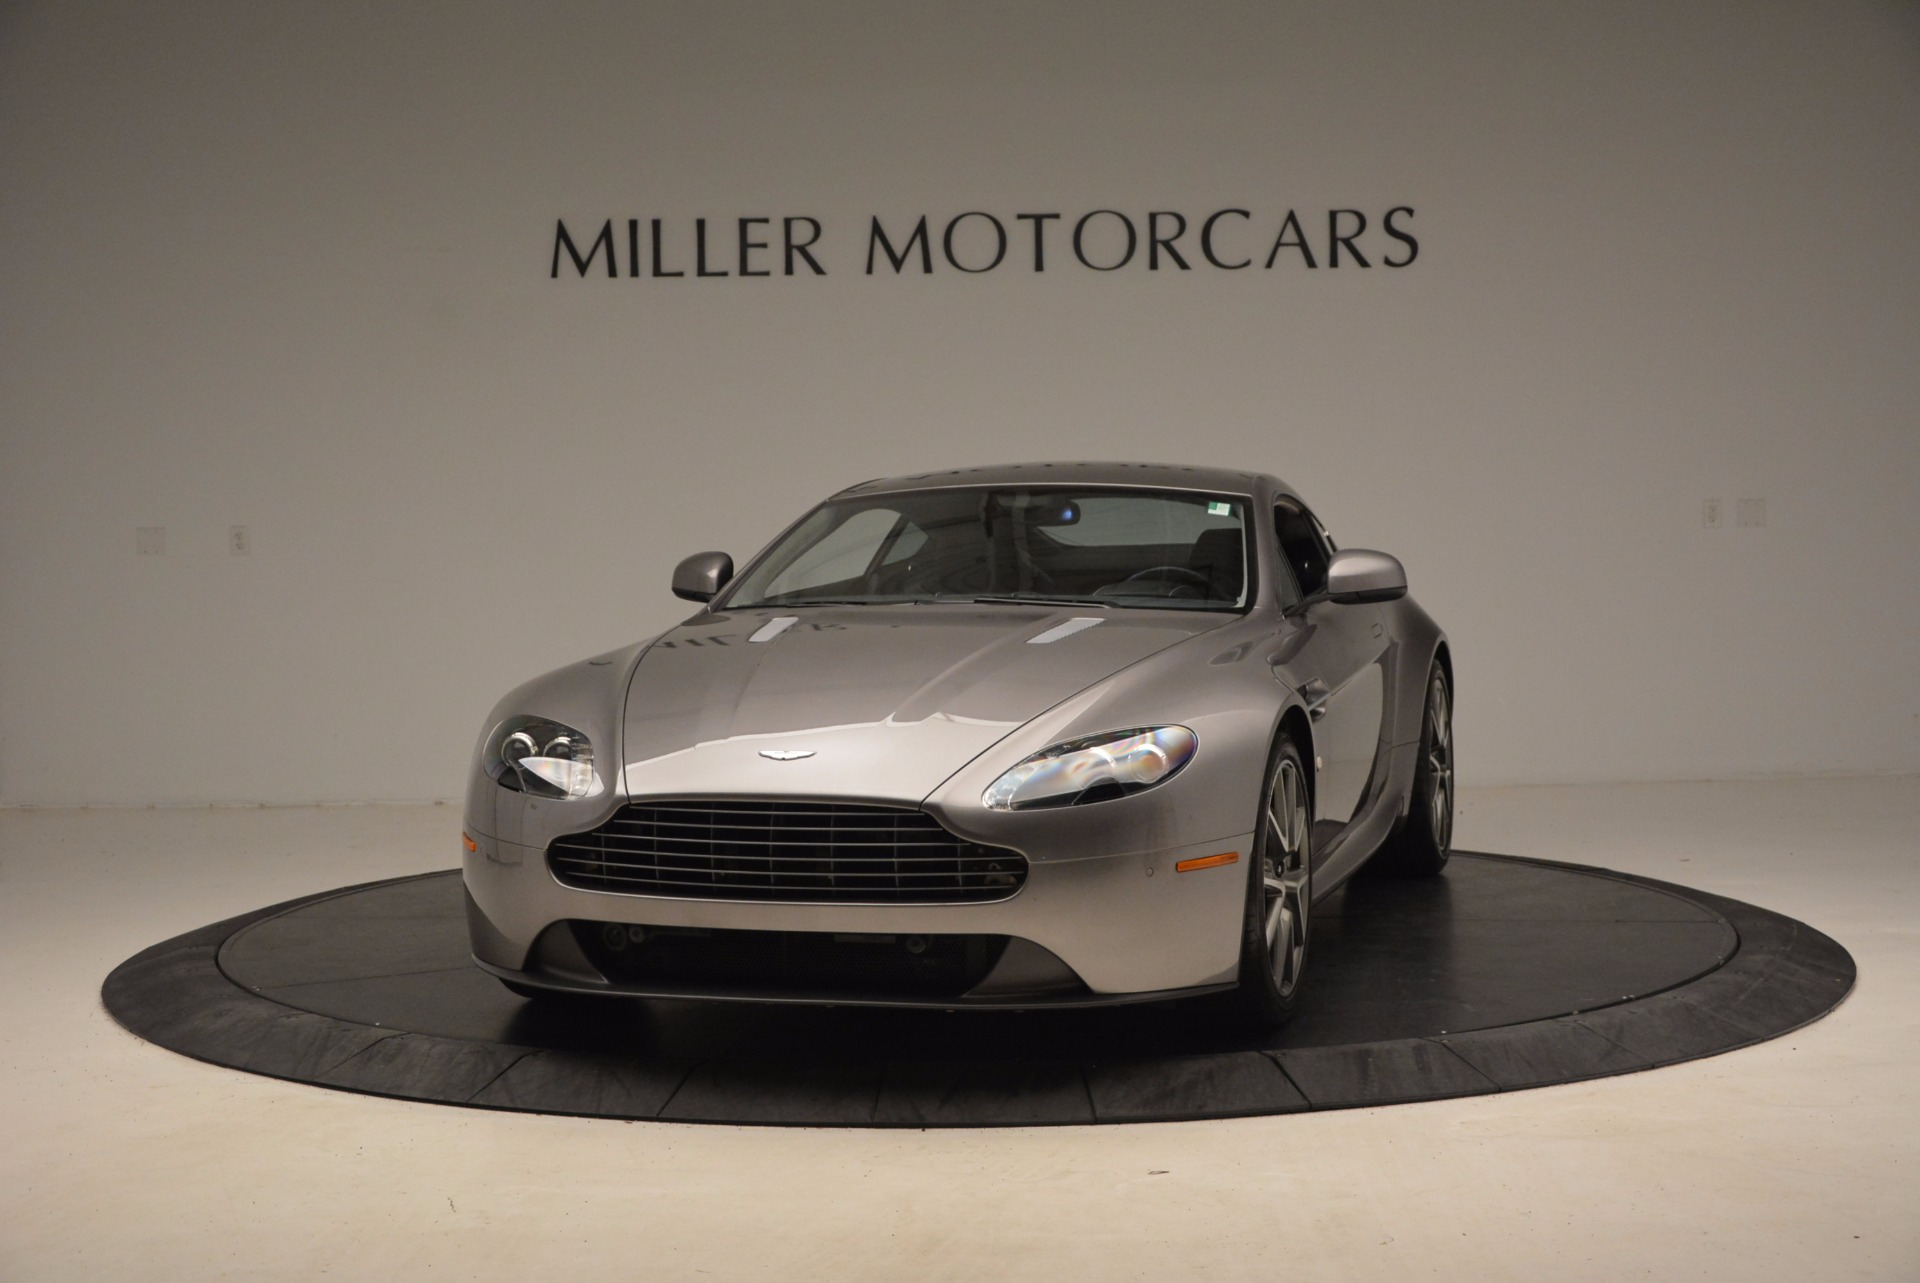 Used 2012 Aston Martin V8 Vantage for sale Sold at Alfa Romeo of Westport in Westport CT 06880 1